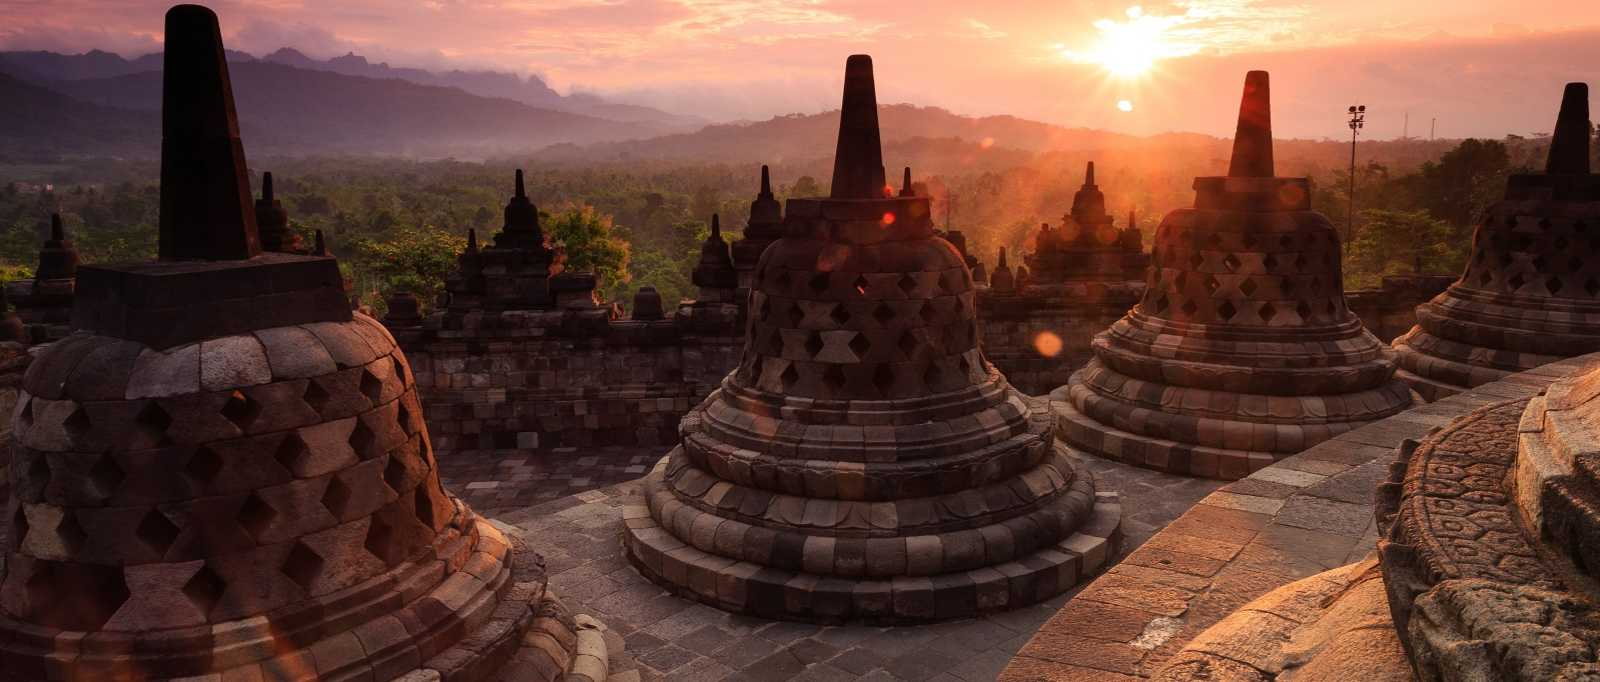 Sunrise at Borobudur Indonesia